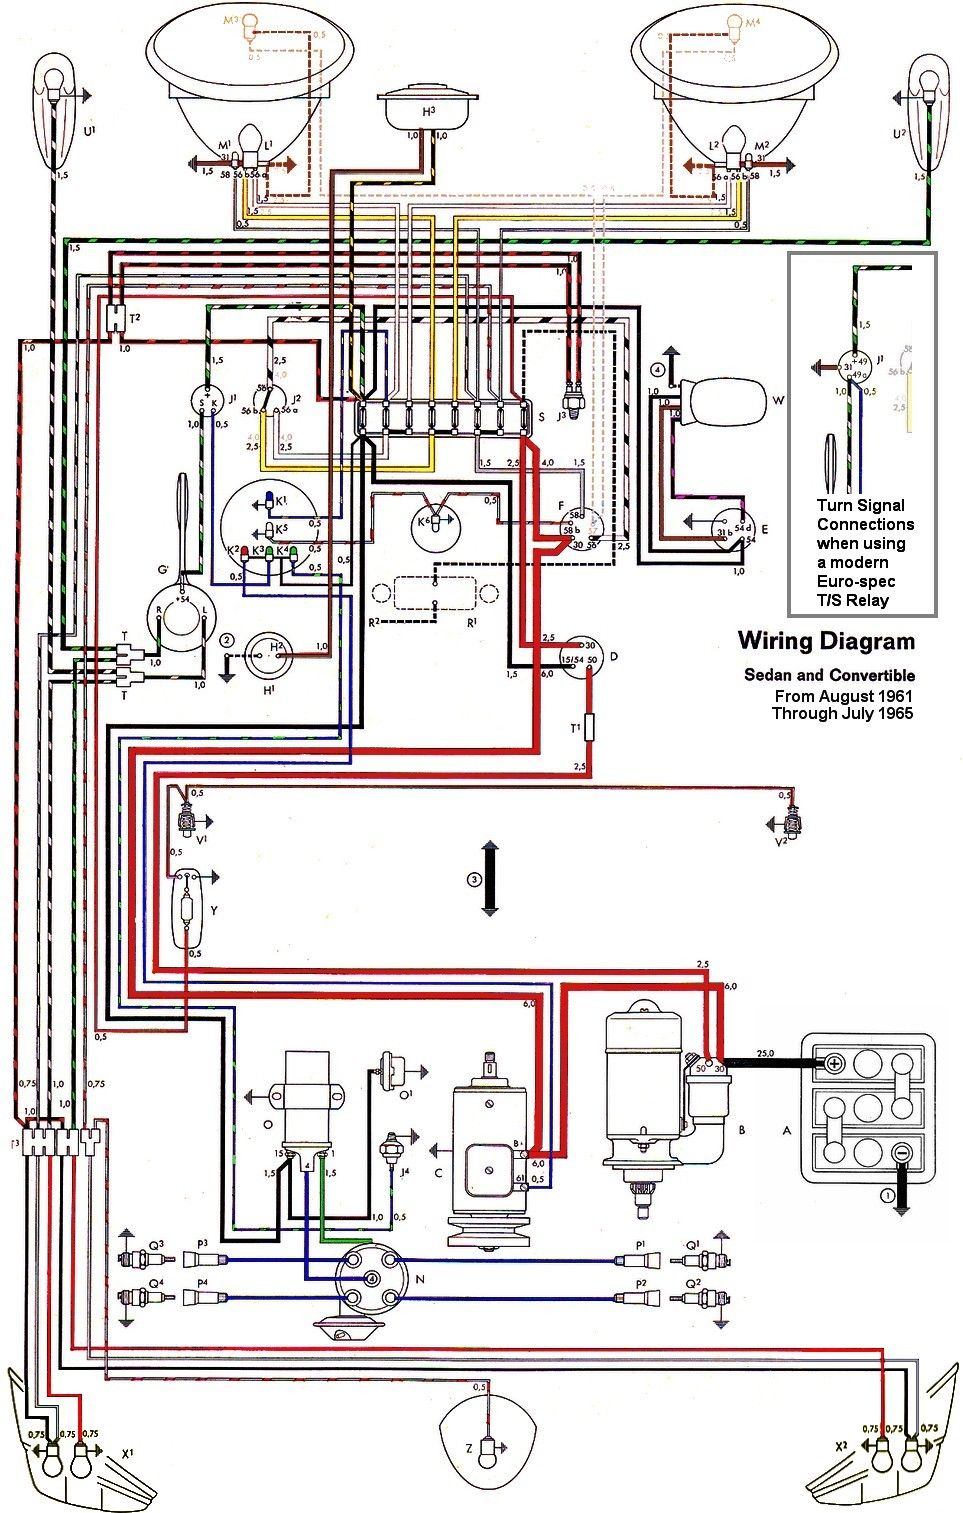 1963 vw bus wiring diagram wiring diagram vw beetle sedan and convertible 1961 1965 vw wiring diagram vw beetle sedan and